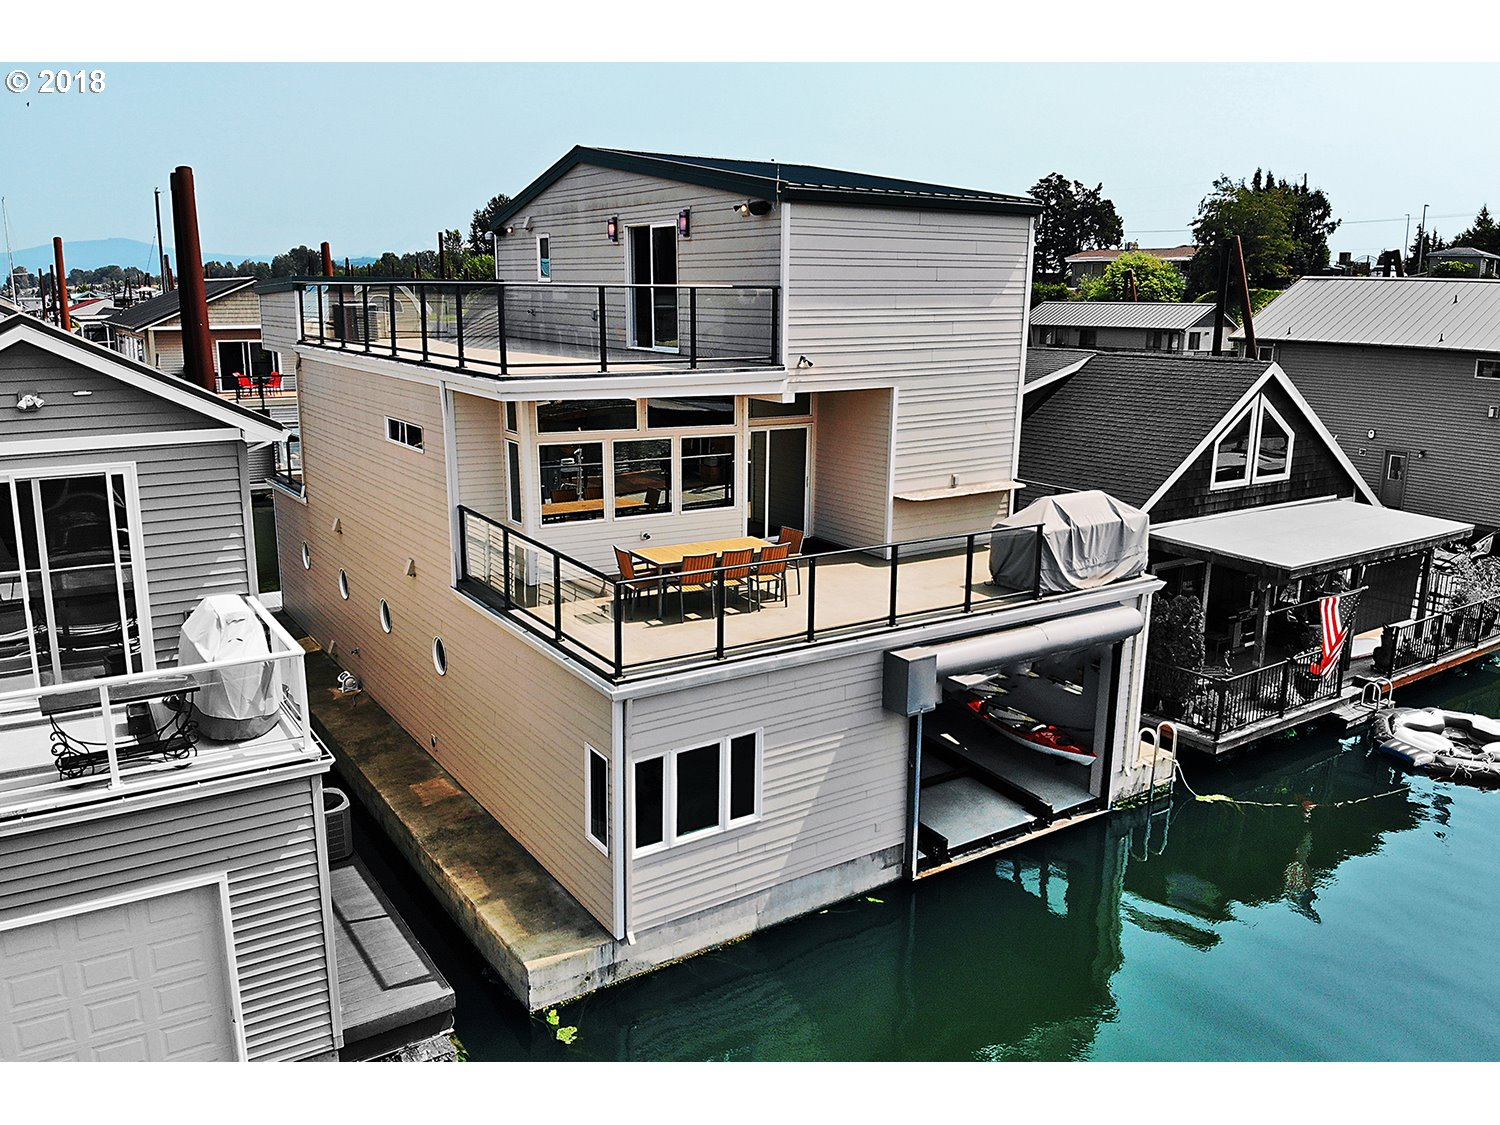 All 3 bedrooms w/ full bath in this custom flt hm built by  Marc Even. Own BOTH sides of the dock + 9x57 storage space across the St! Enjoy views of river from 3 decks.  High tech upgrades, including a whole-house sound system + Lutron brand lighting & shades. House incl finished boat well w/ heat & AC. 3rd bdrm on 3rd level w/large deck. Has CEMENT float. Earth Advantage Gold - see features list. This flt hm is a must see on the river!